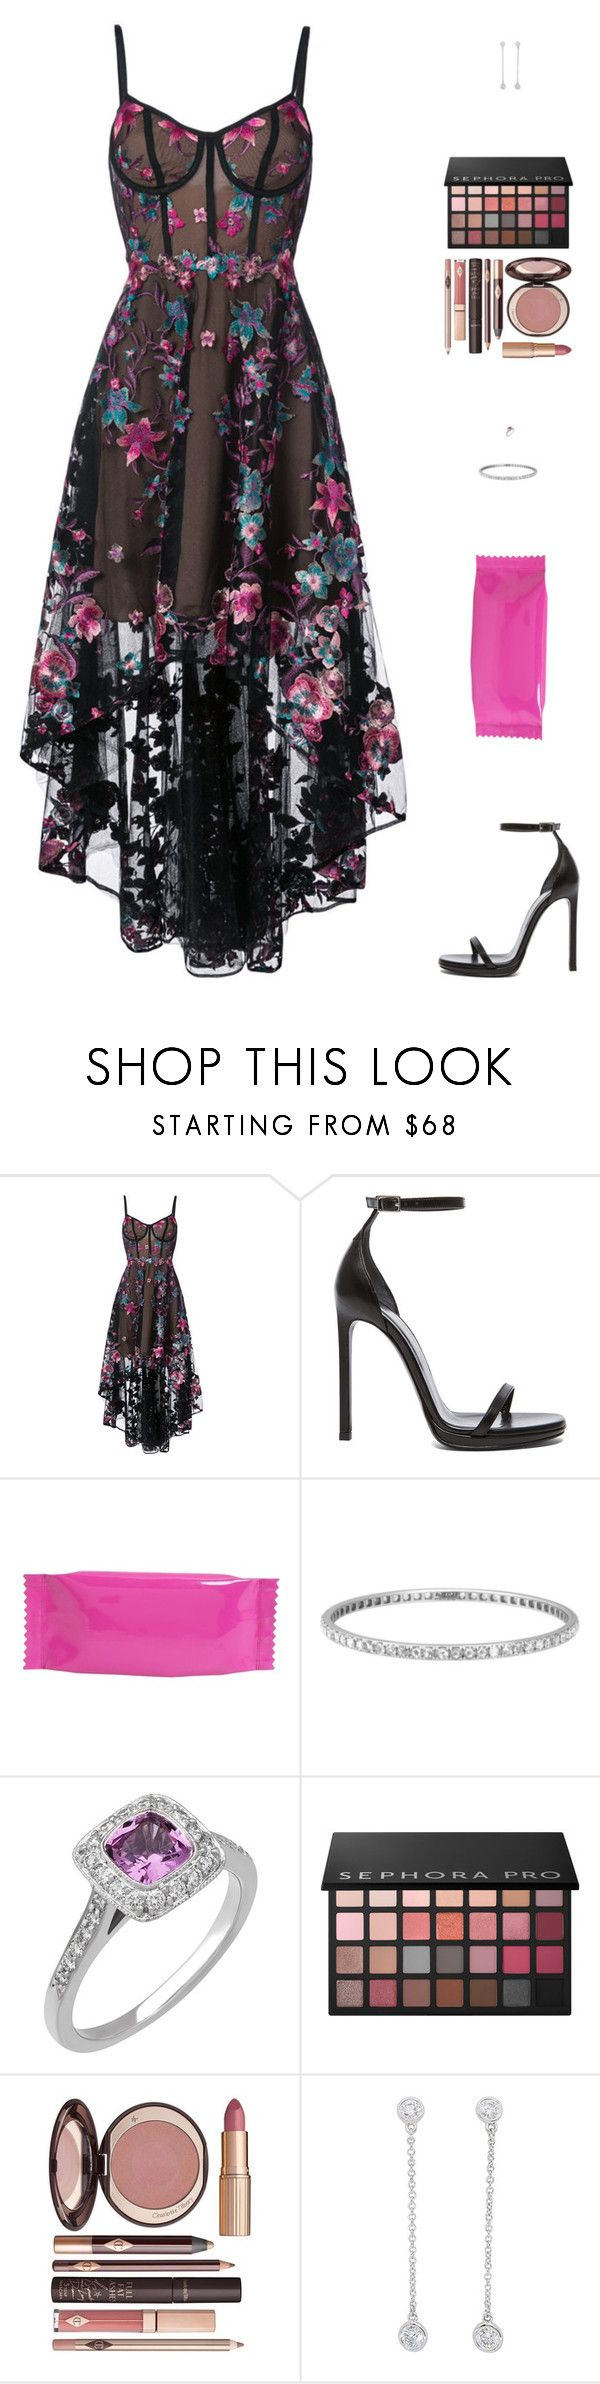 """Sin título #4872"" by mdmsb on Polyvore featuring moda, Notte by Marchesa, Yves Saint Laurent, MM6 Maison Margiela, Tiffany & Co., Sephora Collection y Charlotte Tilbury"